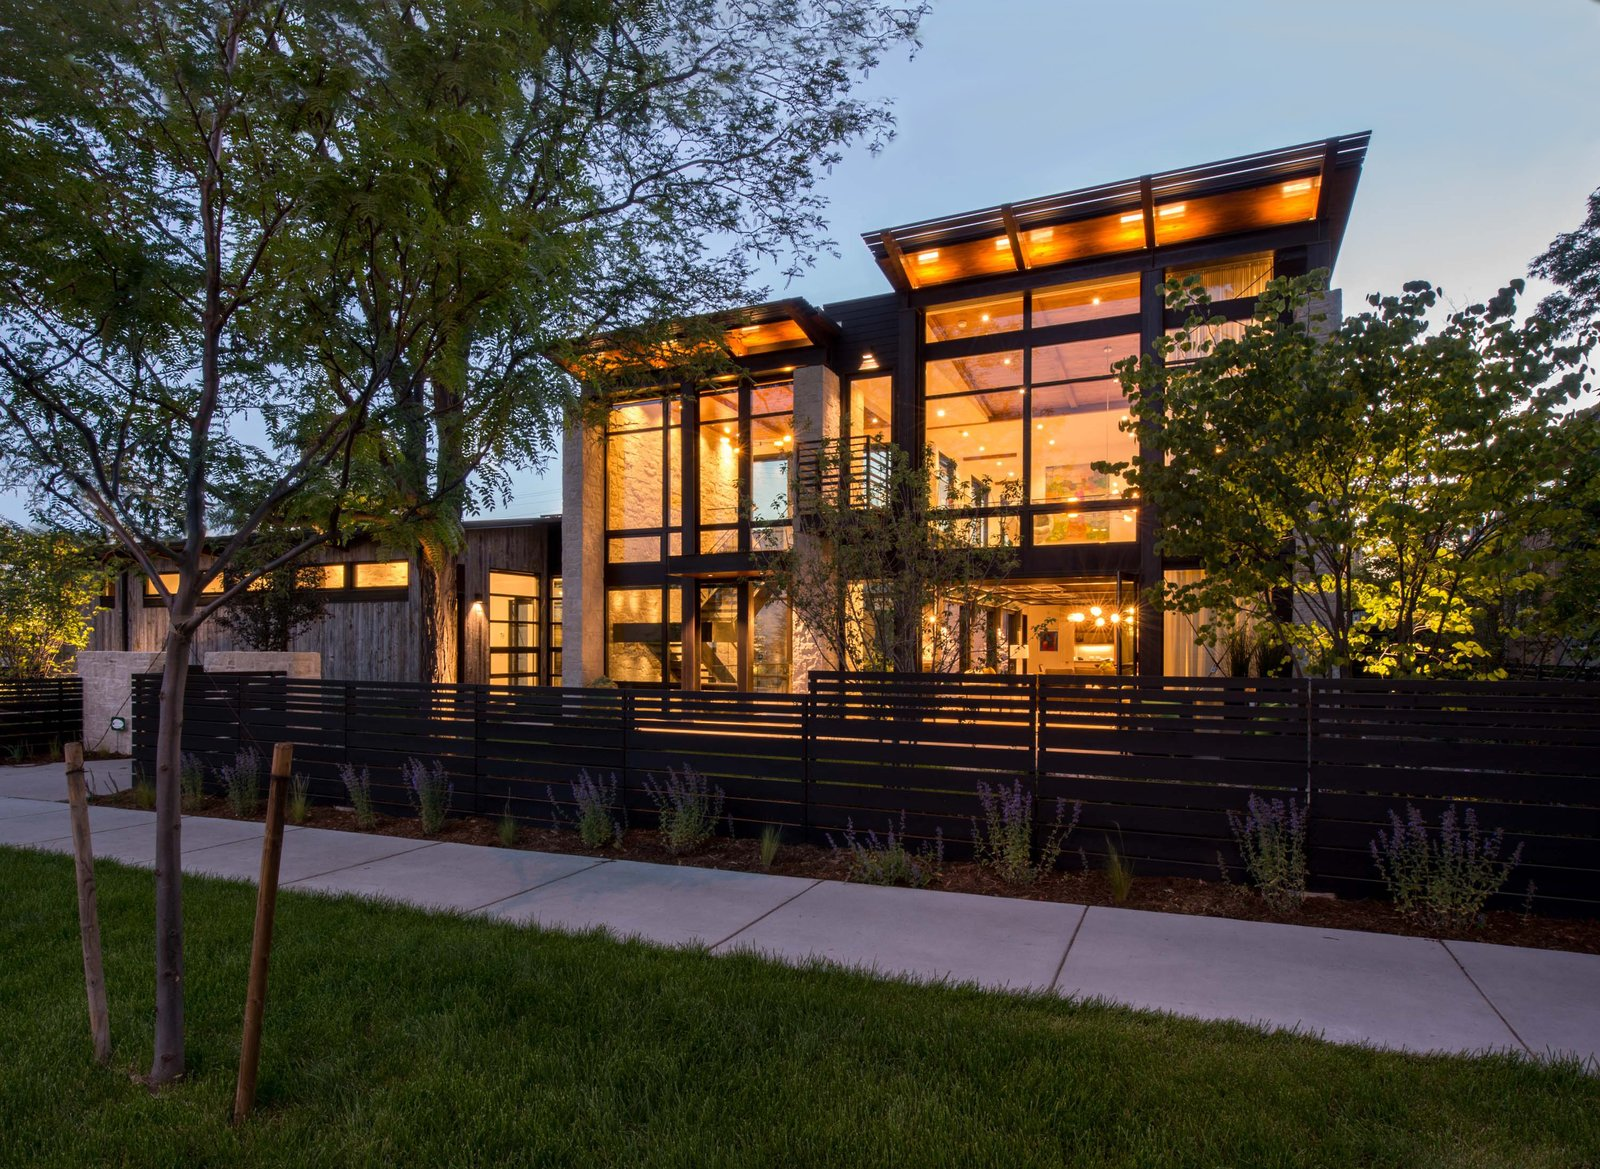 Cherry Creek Modern Home In Denver Colorado By Surround Architecture On Dwell